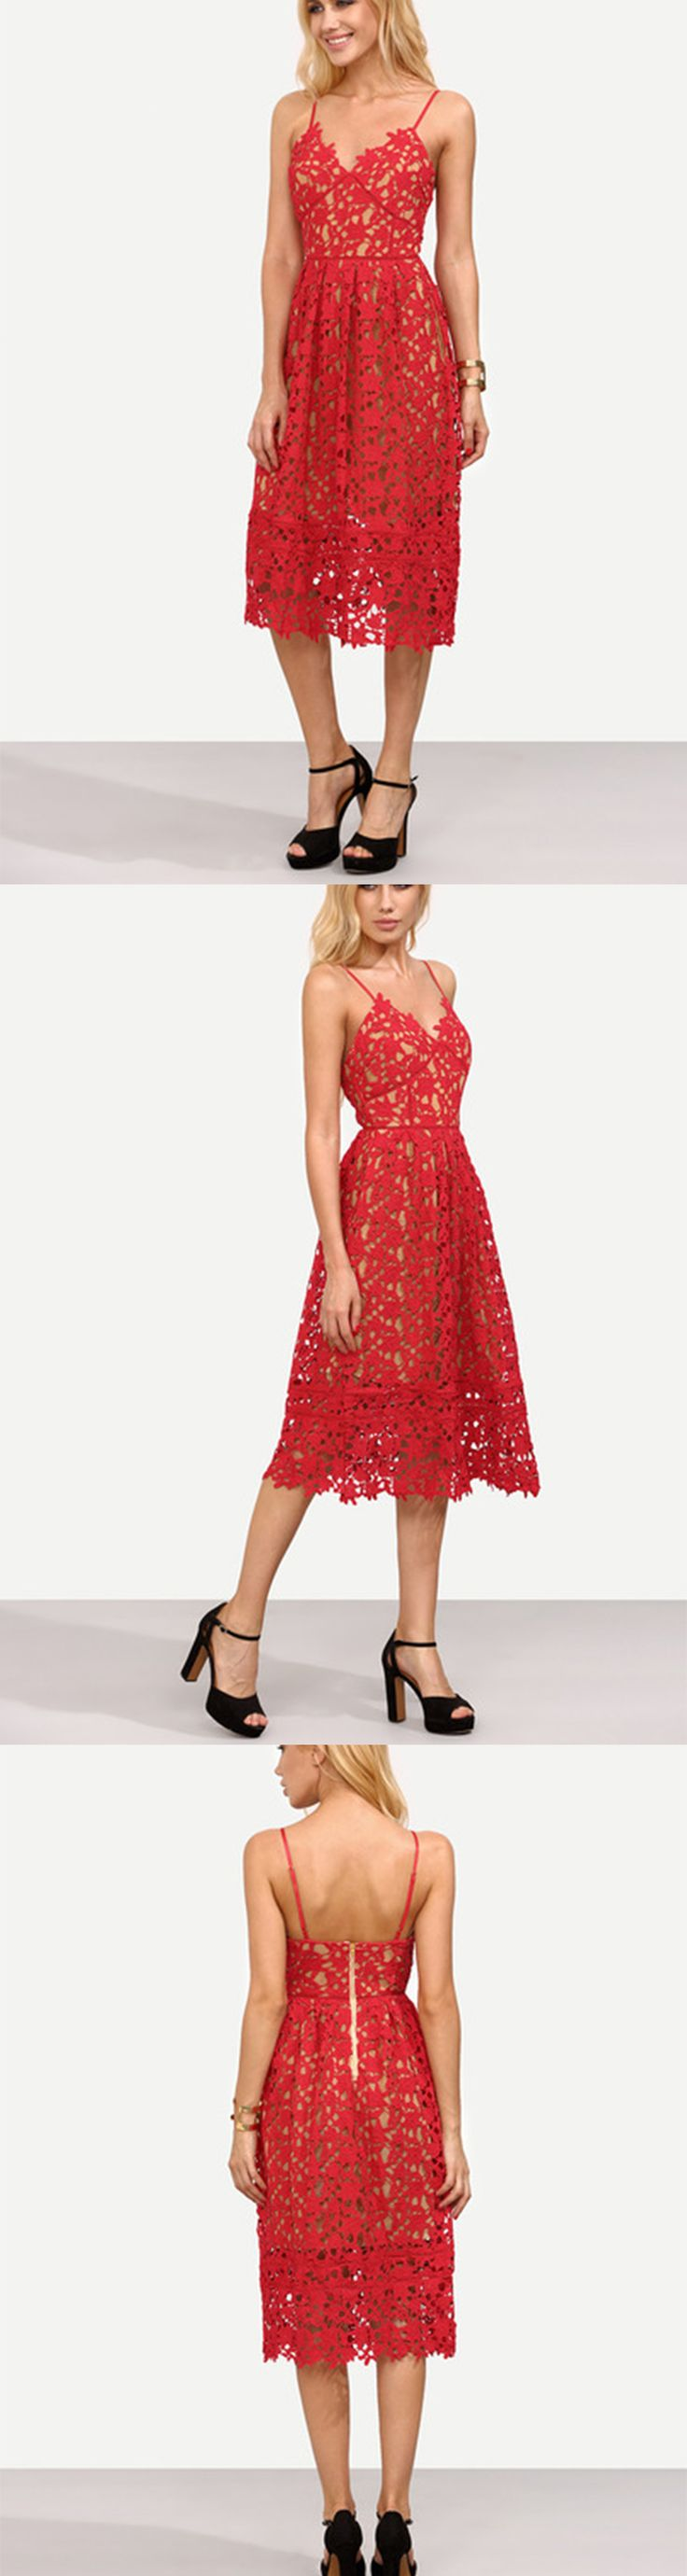 手机壳定制discount on shoes in mumbai Red Hollow Out Fit amp Flare Lace Cami Dress